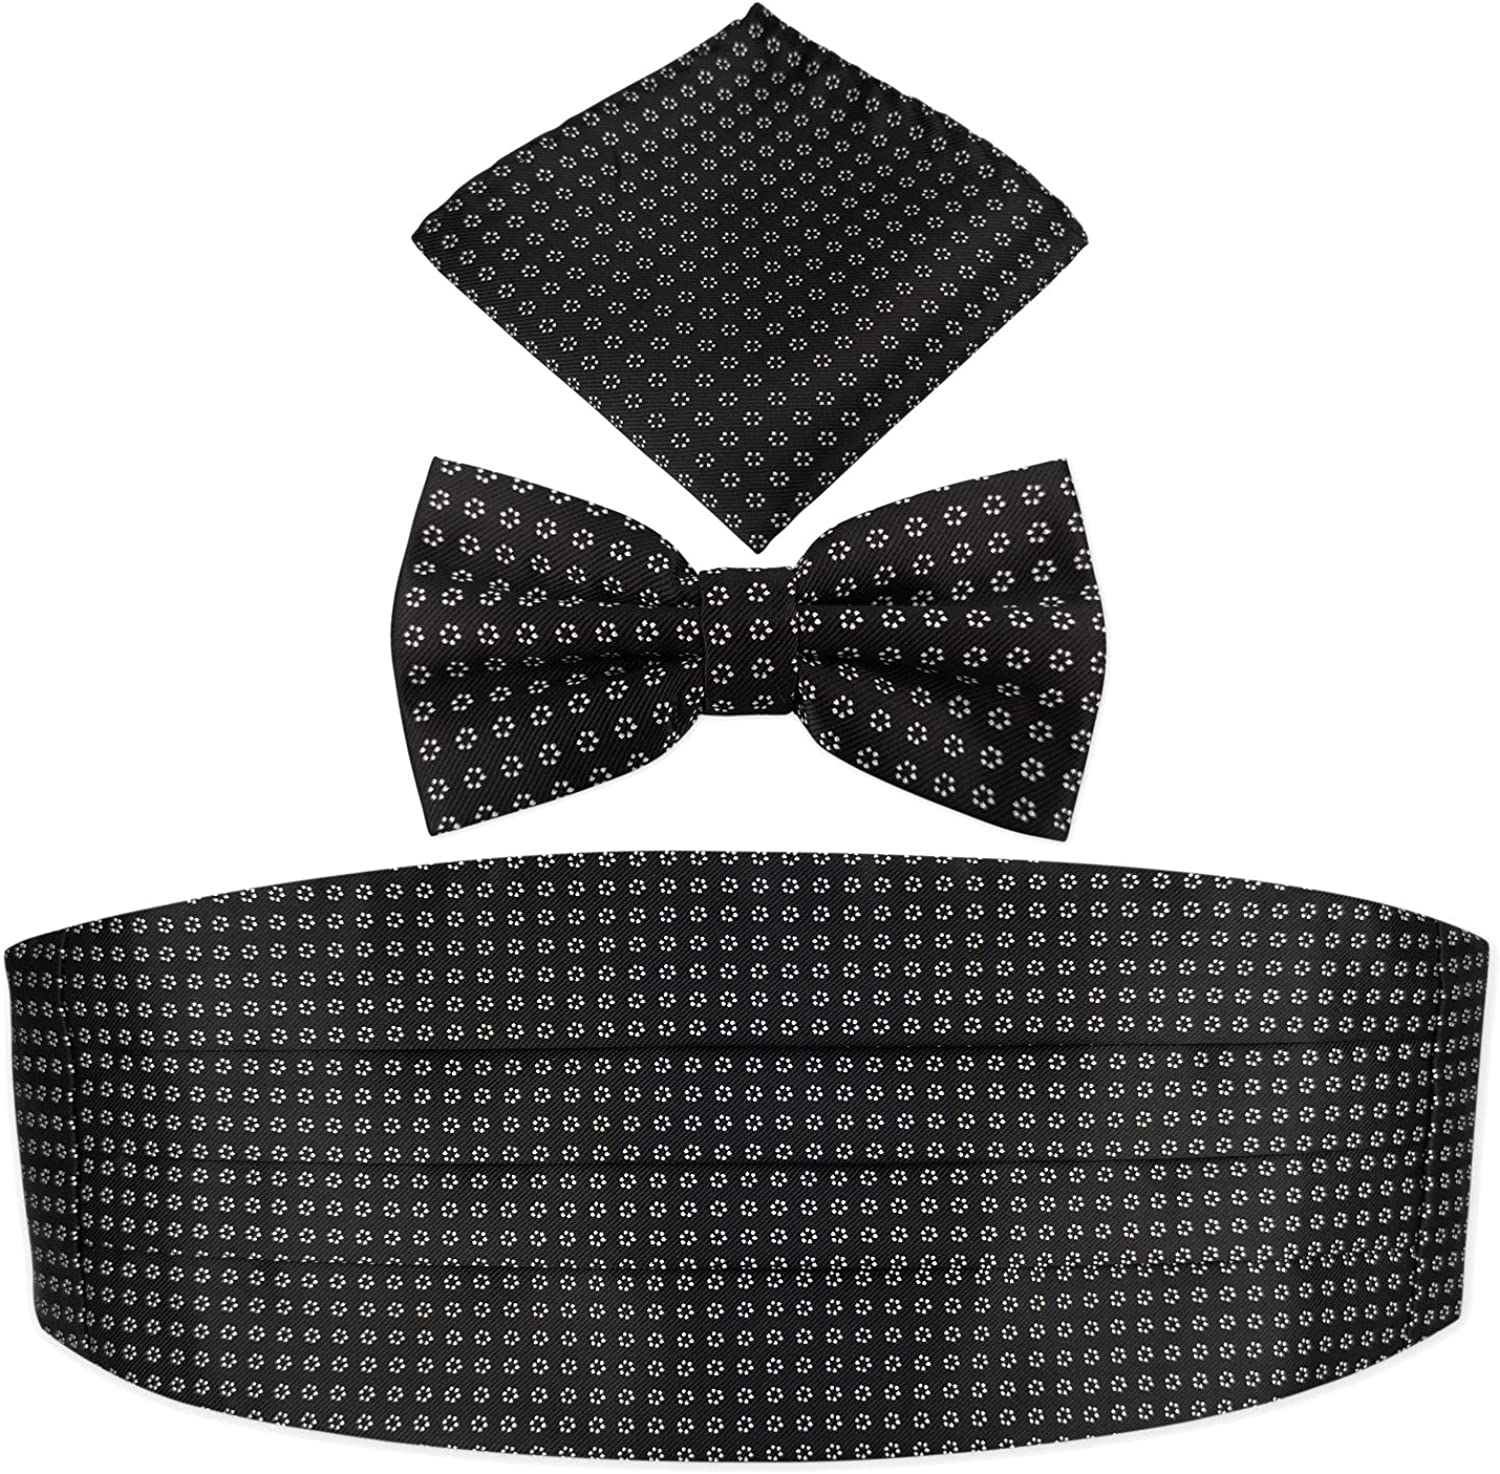 Prom Wedding Formal Black Bow-Tie Cummerbund and Pocket square Gift Set